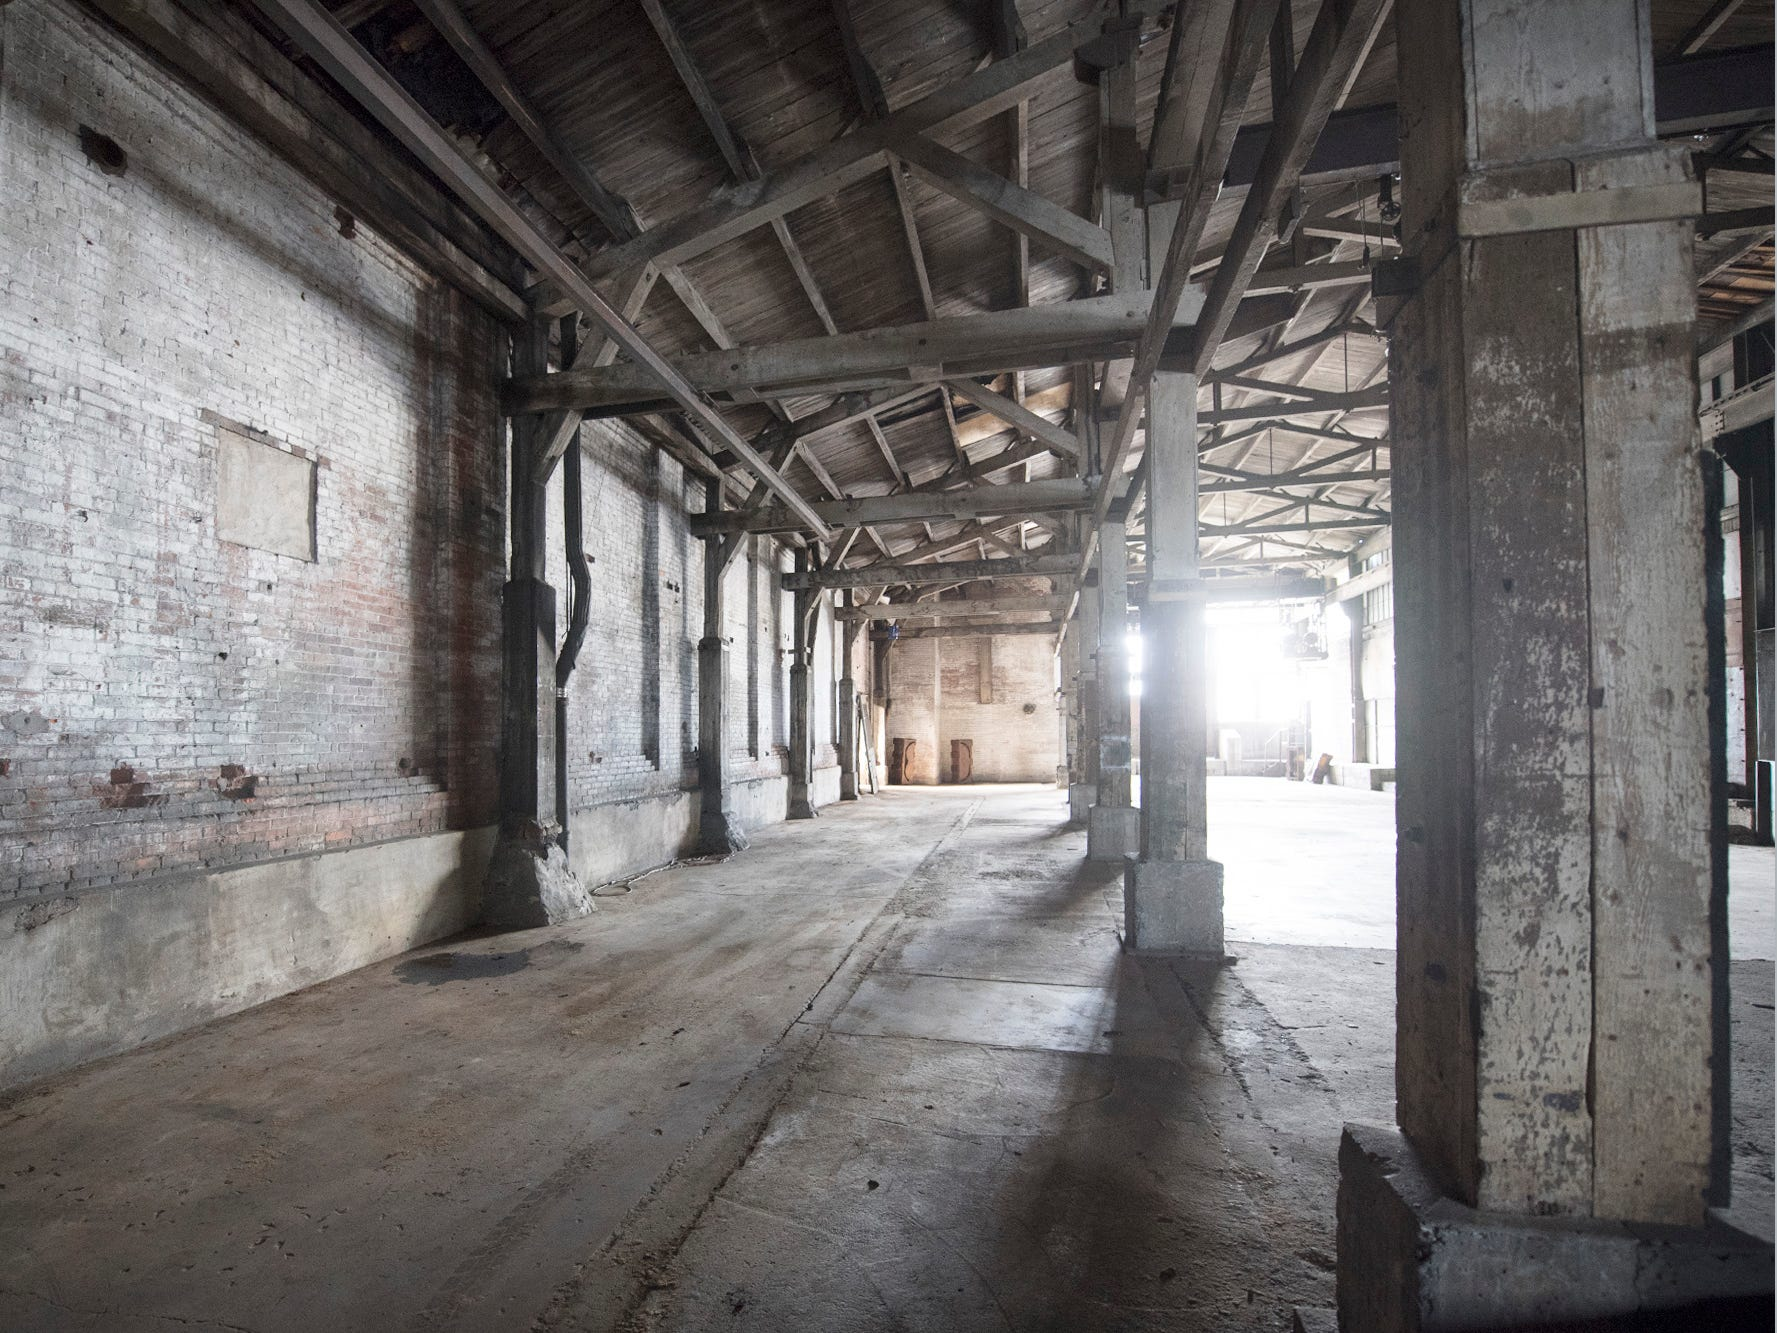 Light pours inside the gutted foundry building at 145 North Hartley Street in York. The 54,000-square-foot building has been gutted and refurbished however, no initial plans have been made for the site.